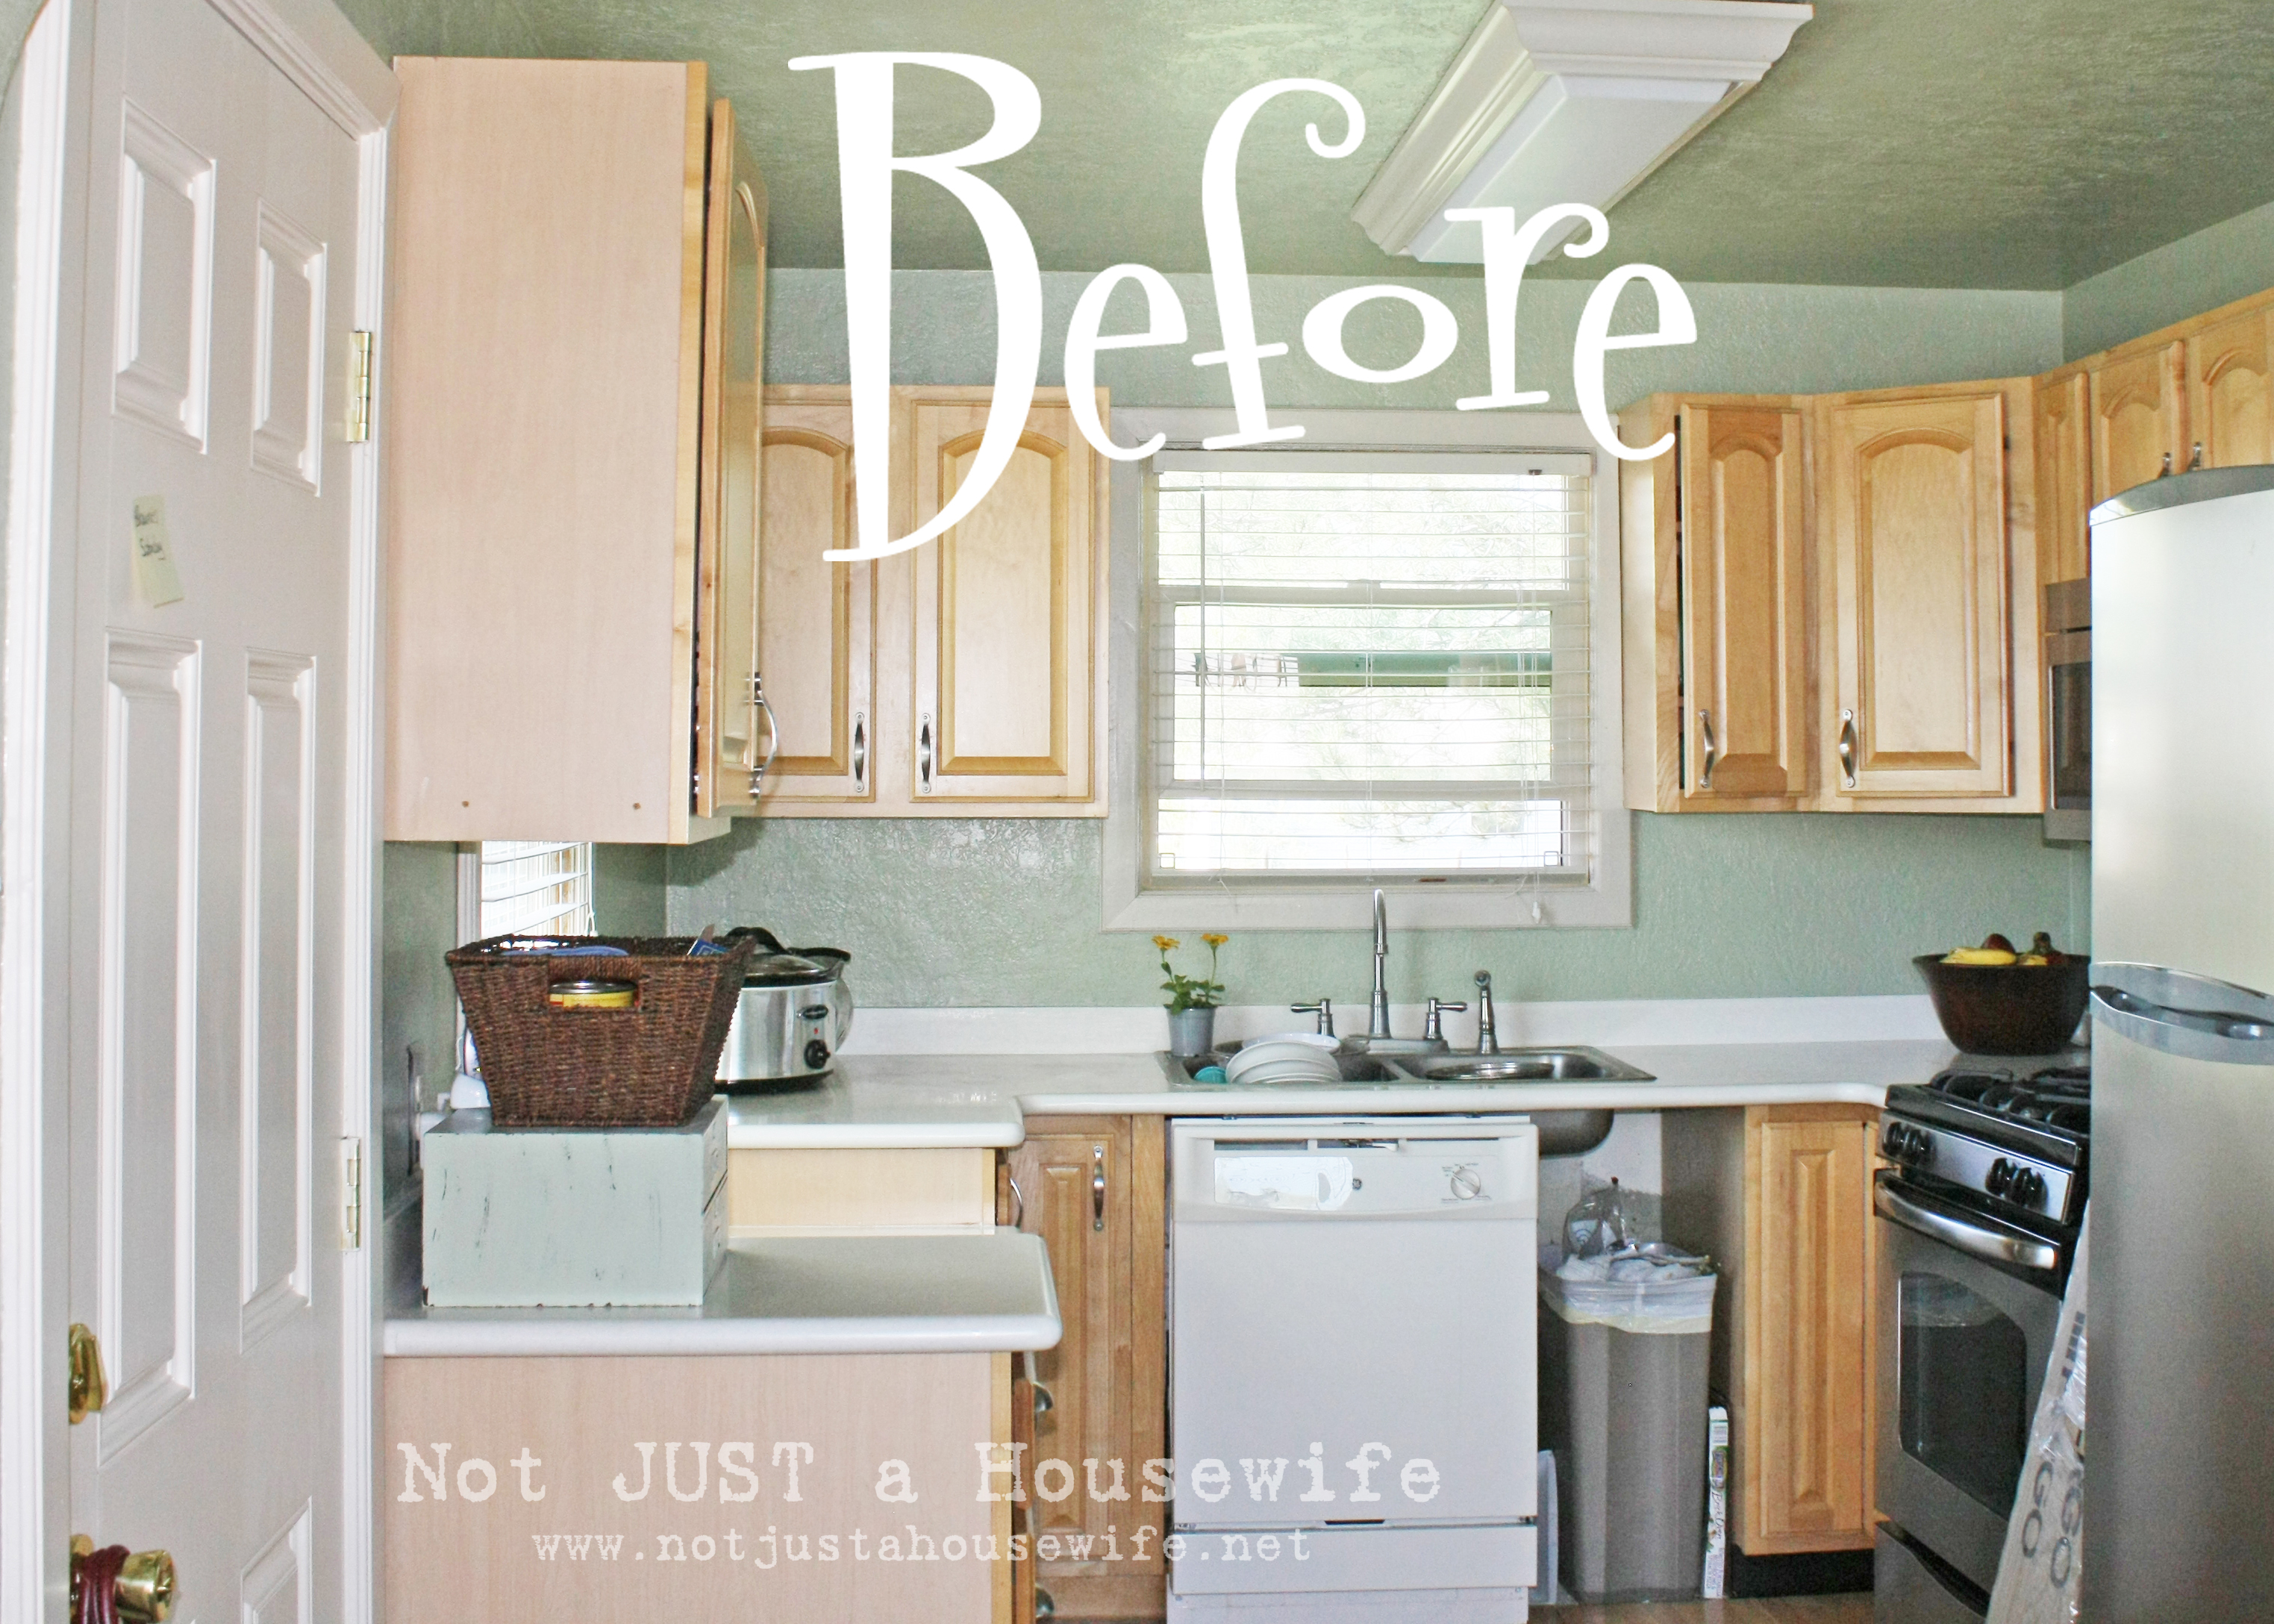 Magic Marker For Kitchen Cabinets